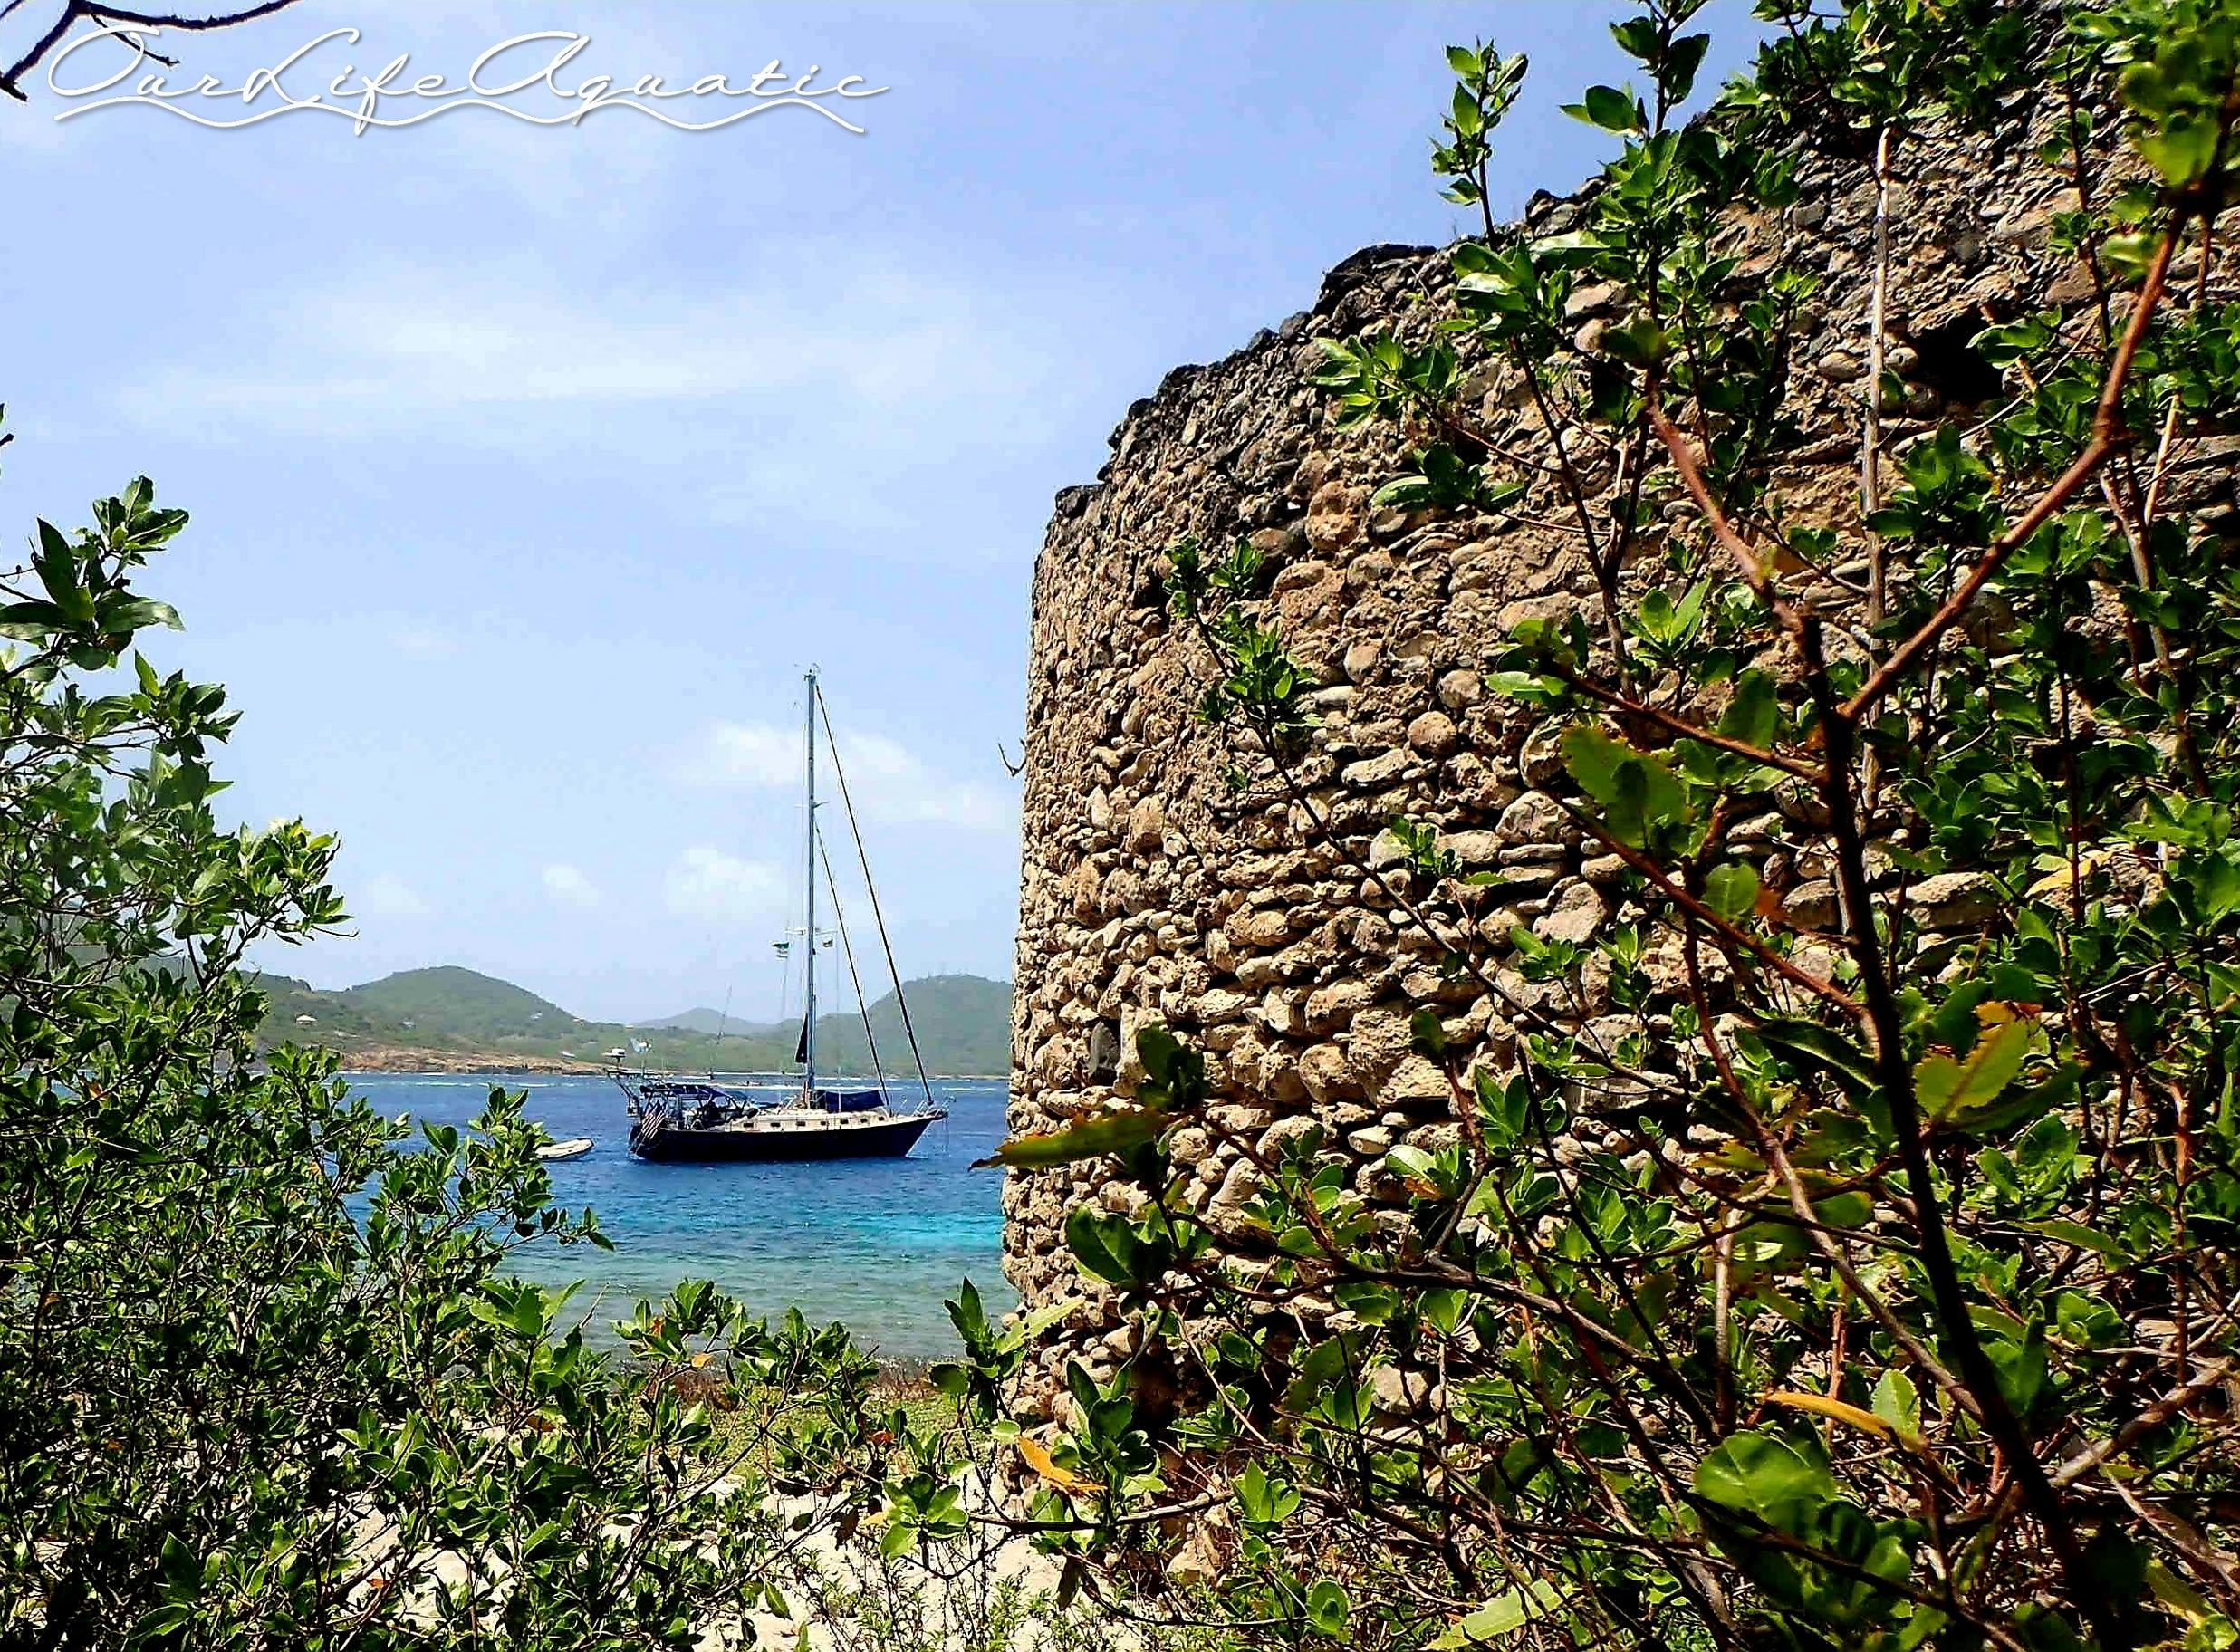 Our last secluded anchorage in Carriacou